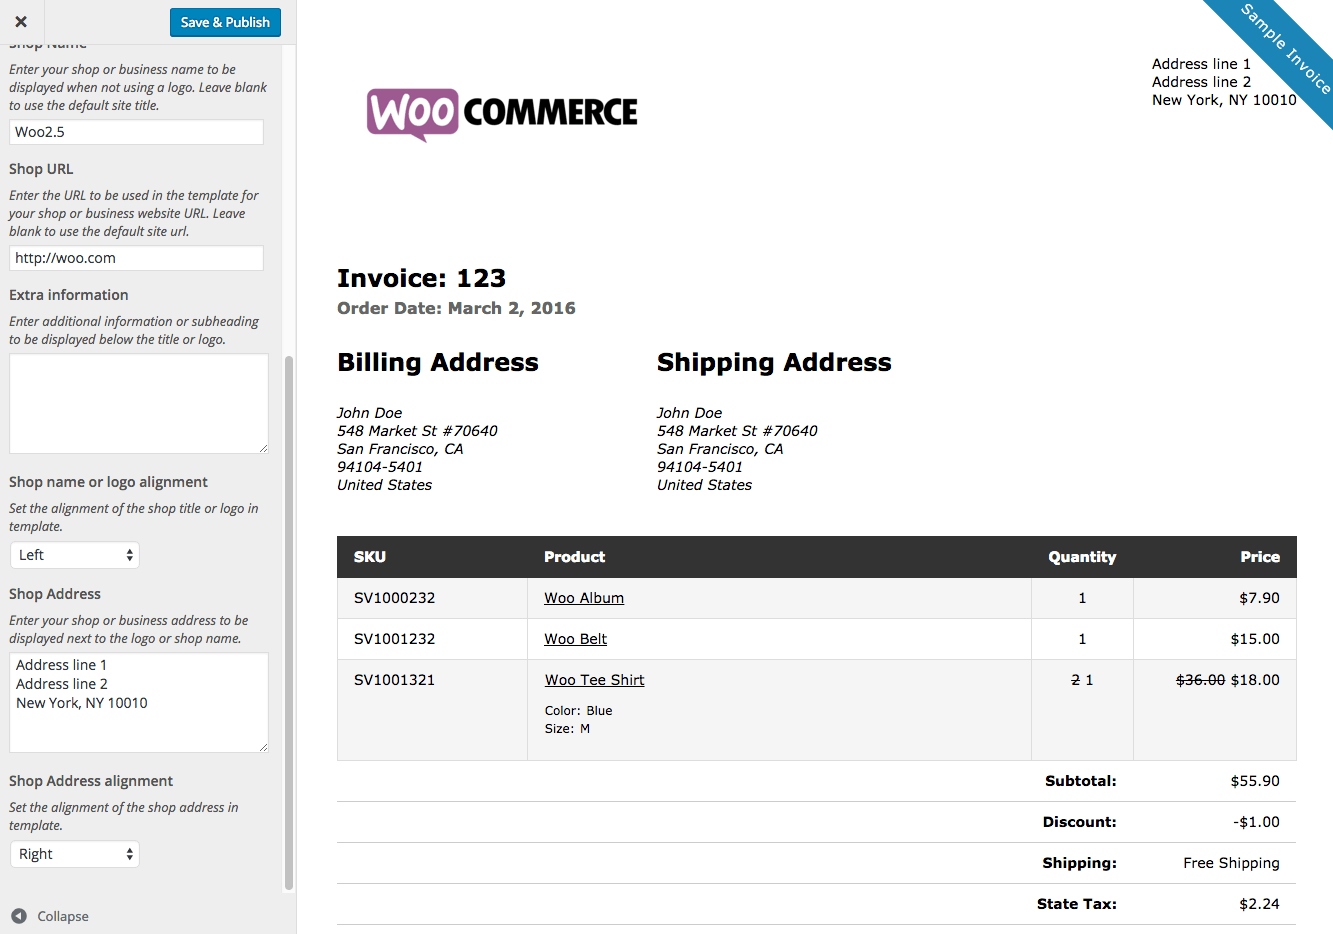 Maidofhonortoastus  Marvellous Woocommerce Print Invoices Amp Packing Lists  Woocommerce Docs With Luxury Woocommerce Print Invoices  Packing Lists Customizer With Charming How To Make A Receipt For Services Also Home Rental Receipt In Addition Hospital Receipt Template And Us Air Receipt As Well As Custom Receipt Template Additionally Acknowledge Receipt Sample From Docswoocommercecom With Maidofhonortoastus  Luxury Woocommerce Print Invoices Amp Packing Lists  Woocommerce Docs With Charming Woocommerce Print Invoices  Packing Lists Customizer And Marvellous How To Make A Receipt For Services Also Home Rental Receipt In Addition Hospital Receipt Template From Docswoocommercecom